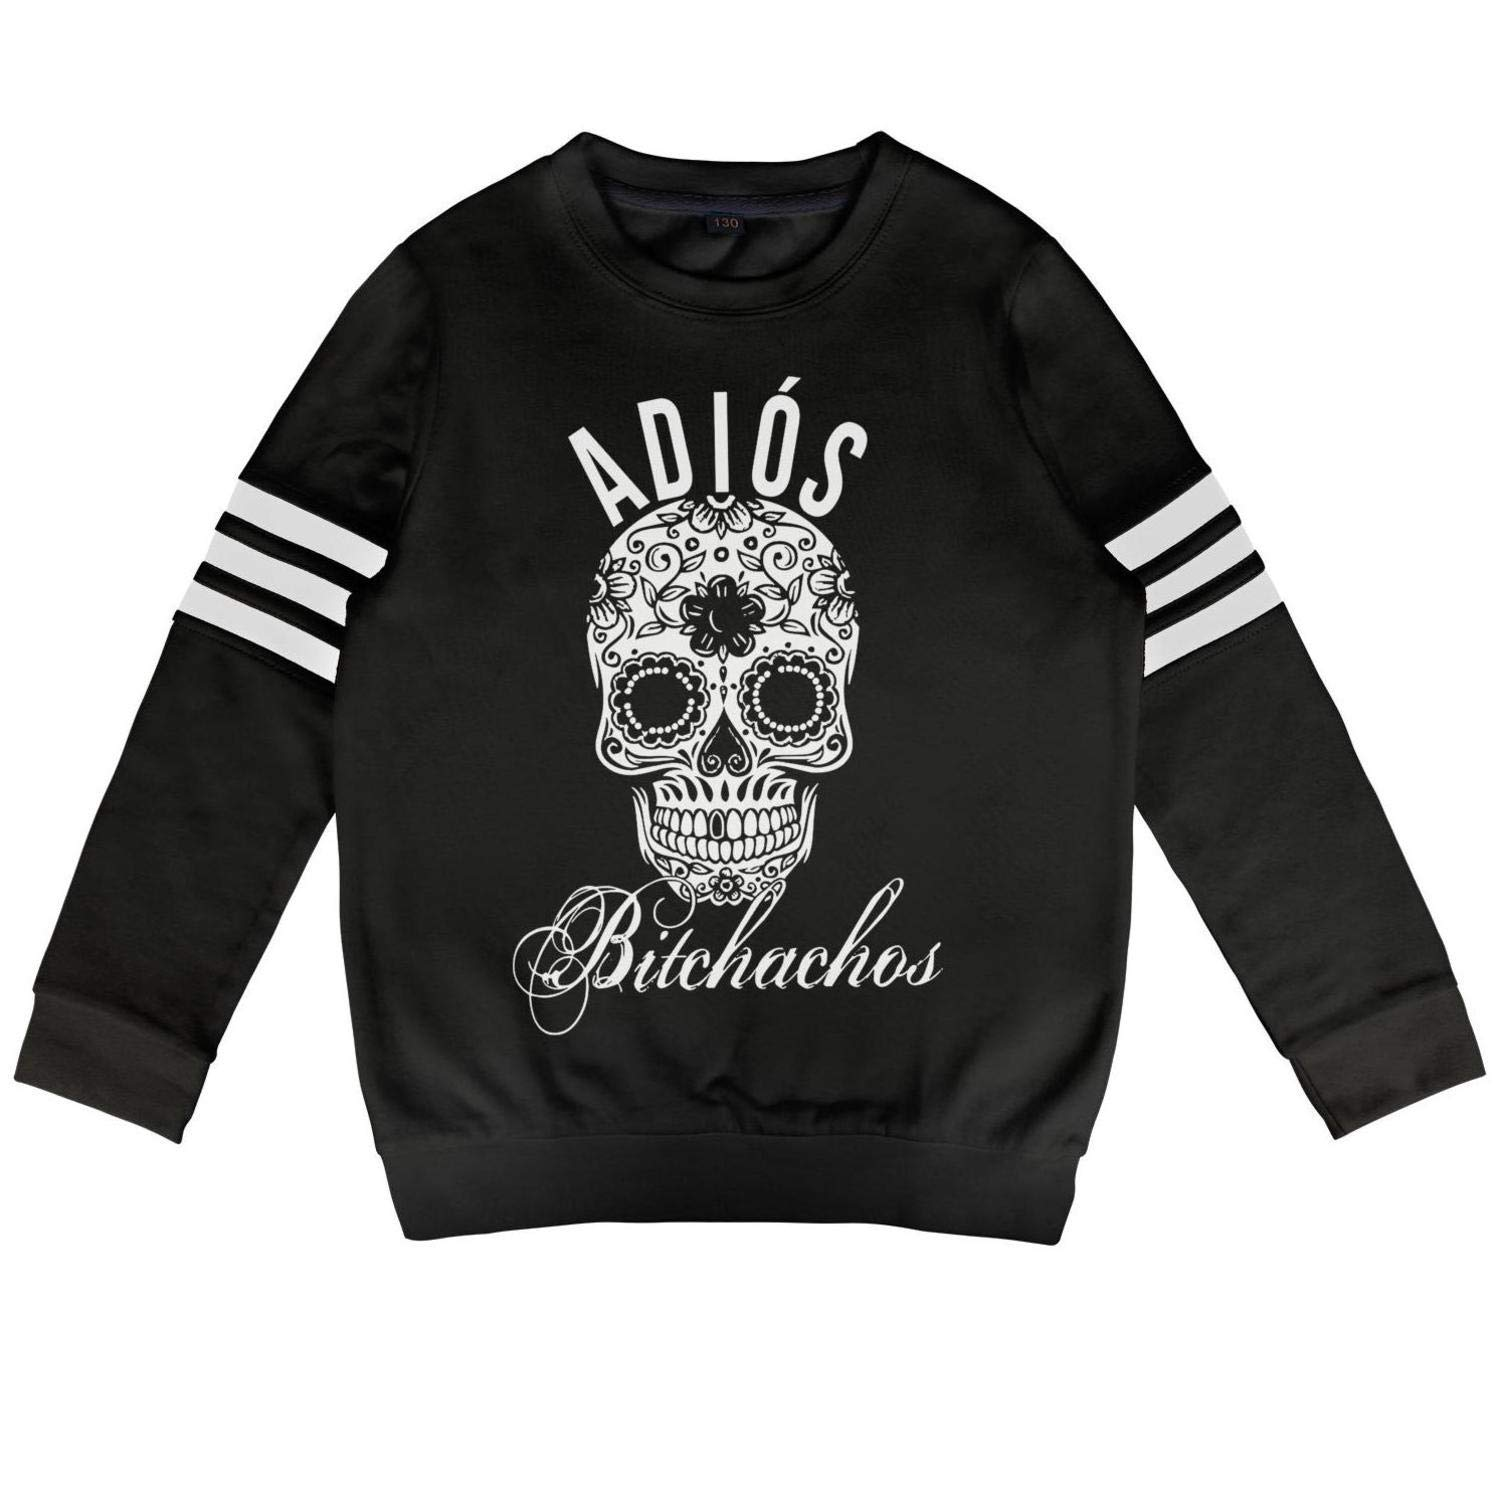 Kids Cinco de Mayo Id Hit That White Kid Long Sleeve T-Shirt for Girls Boys Cool Outfit